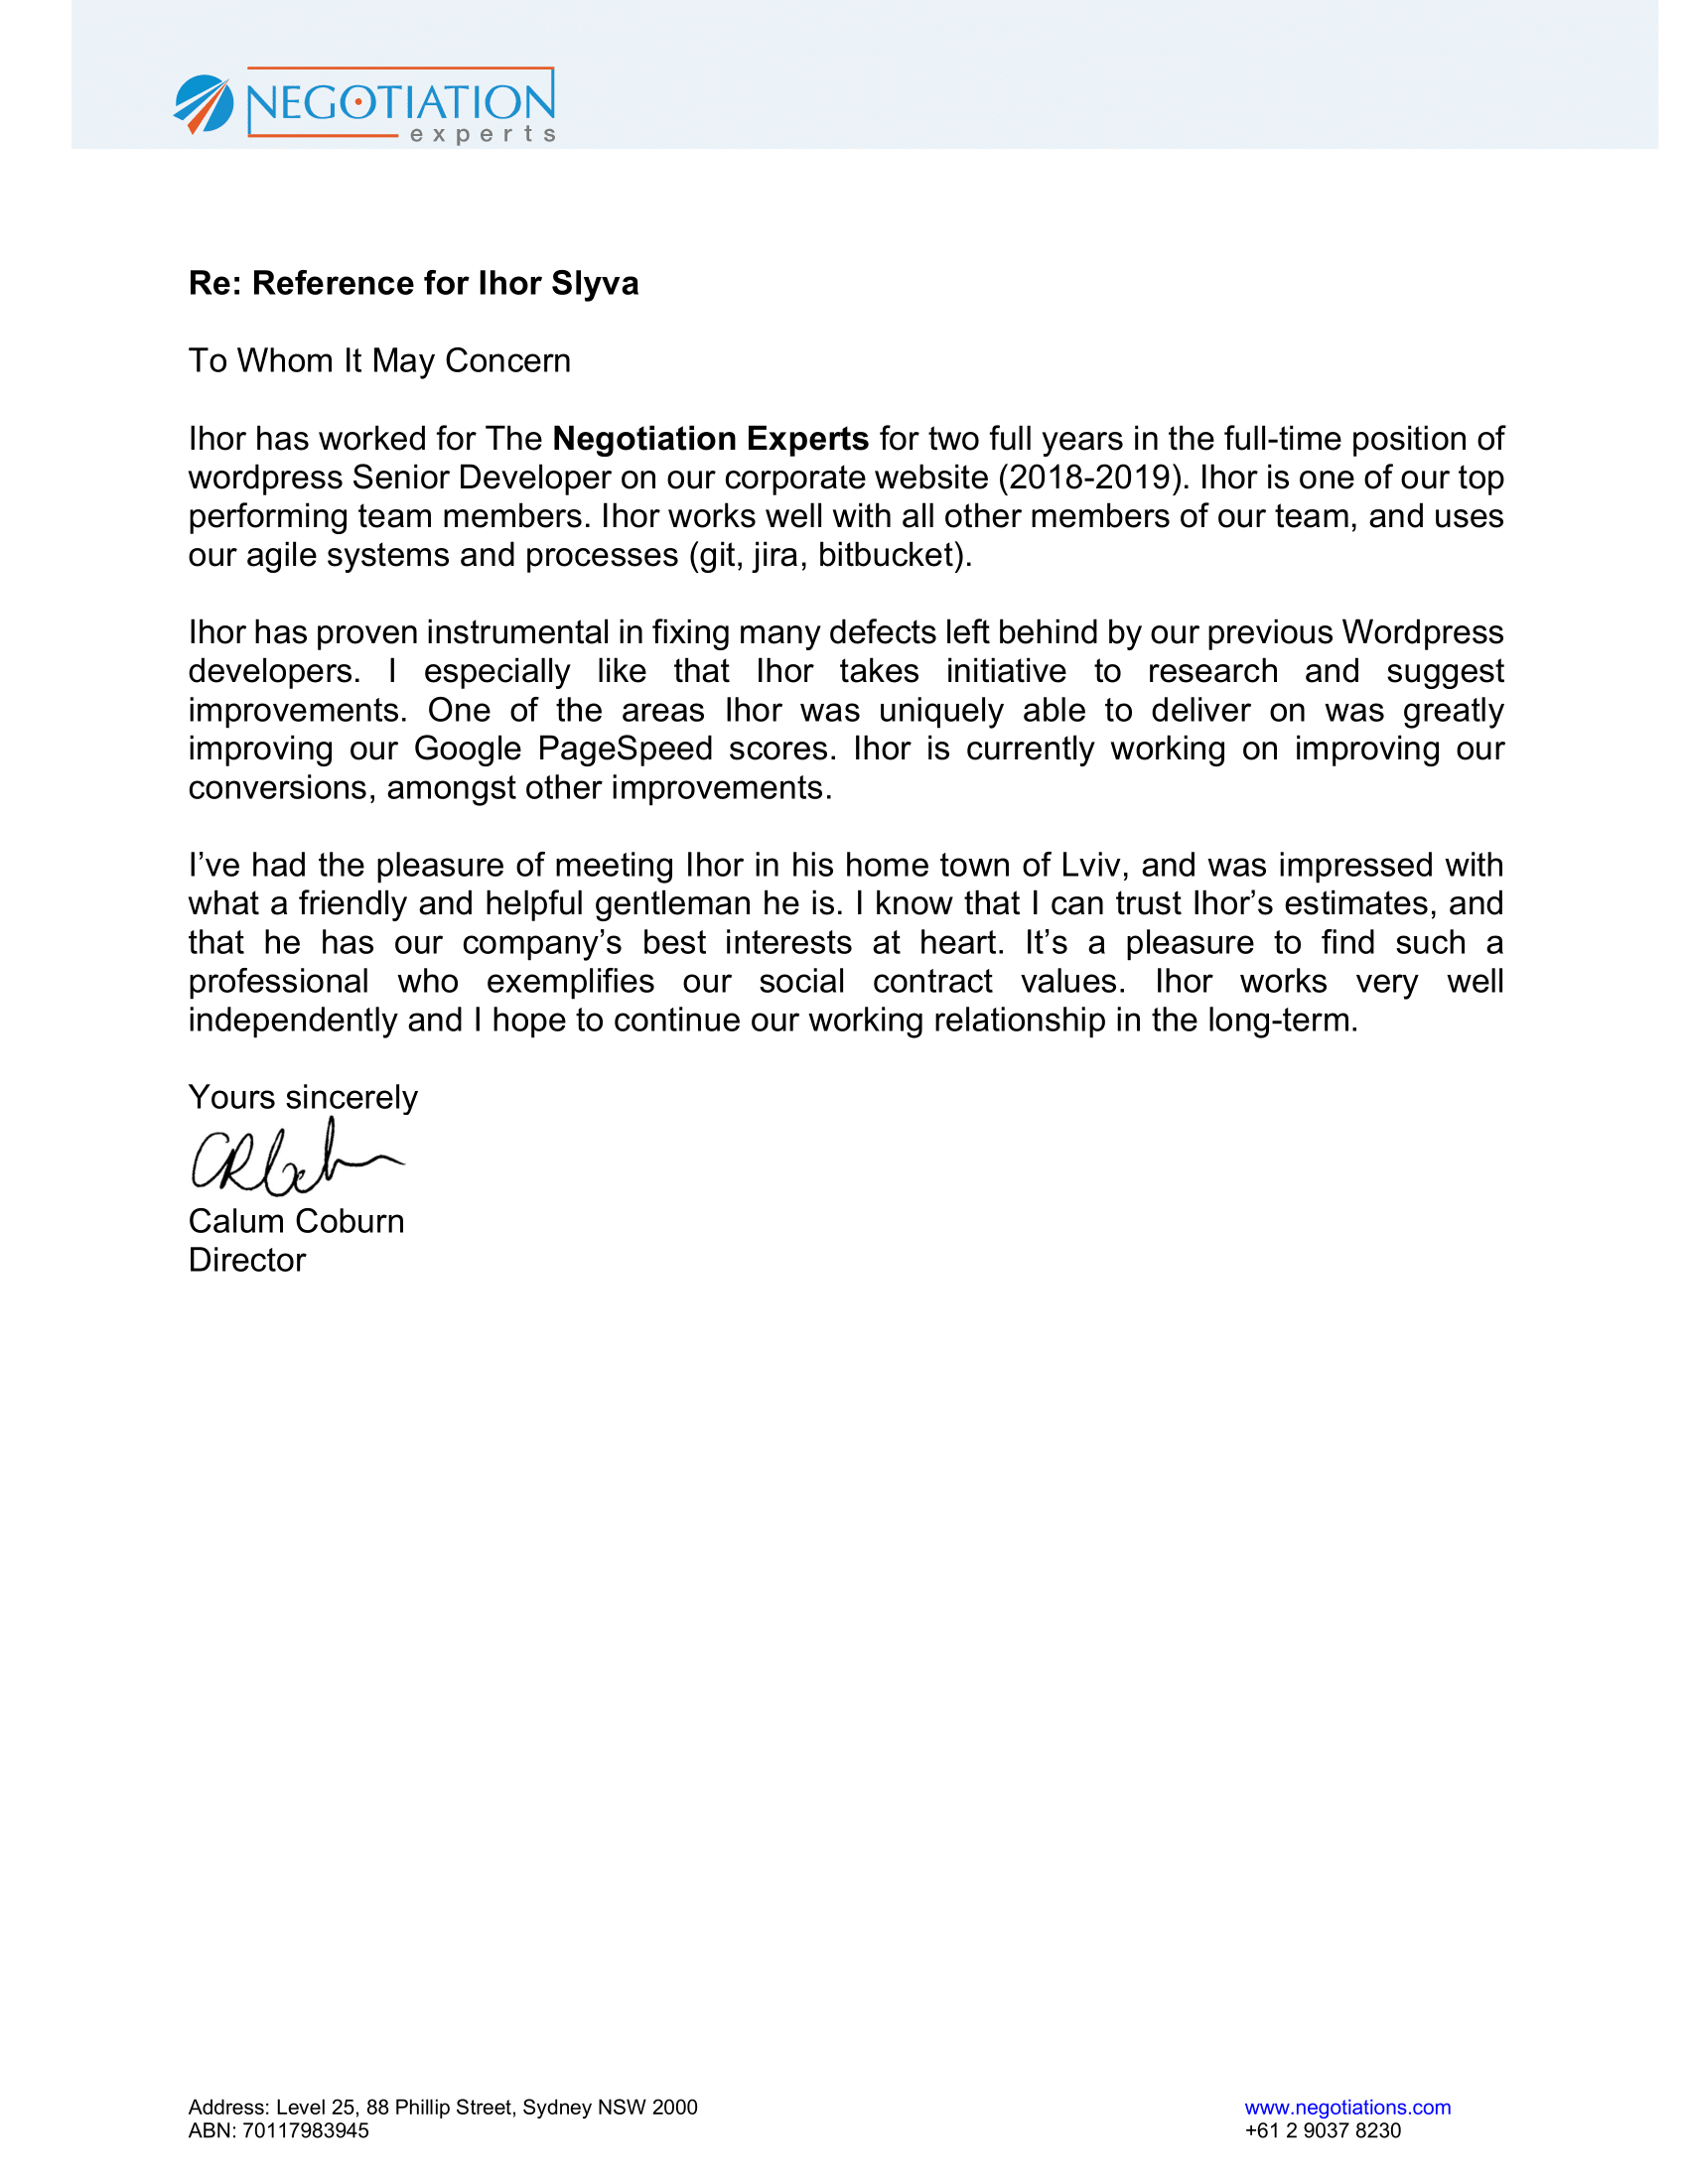 negotiation-experts-2019-recommendation-letter